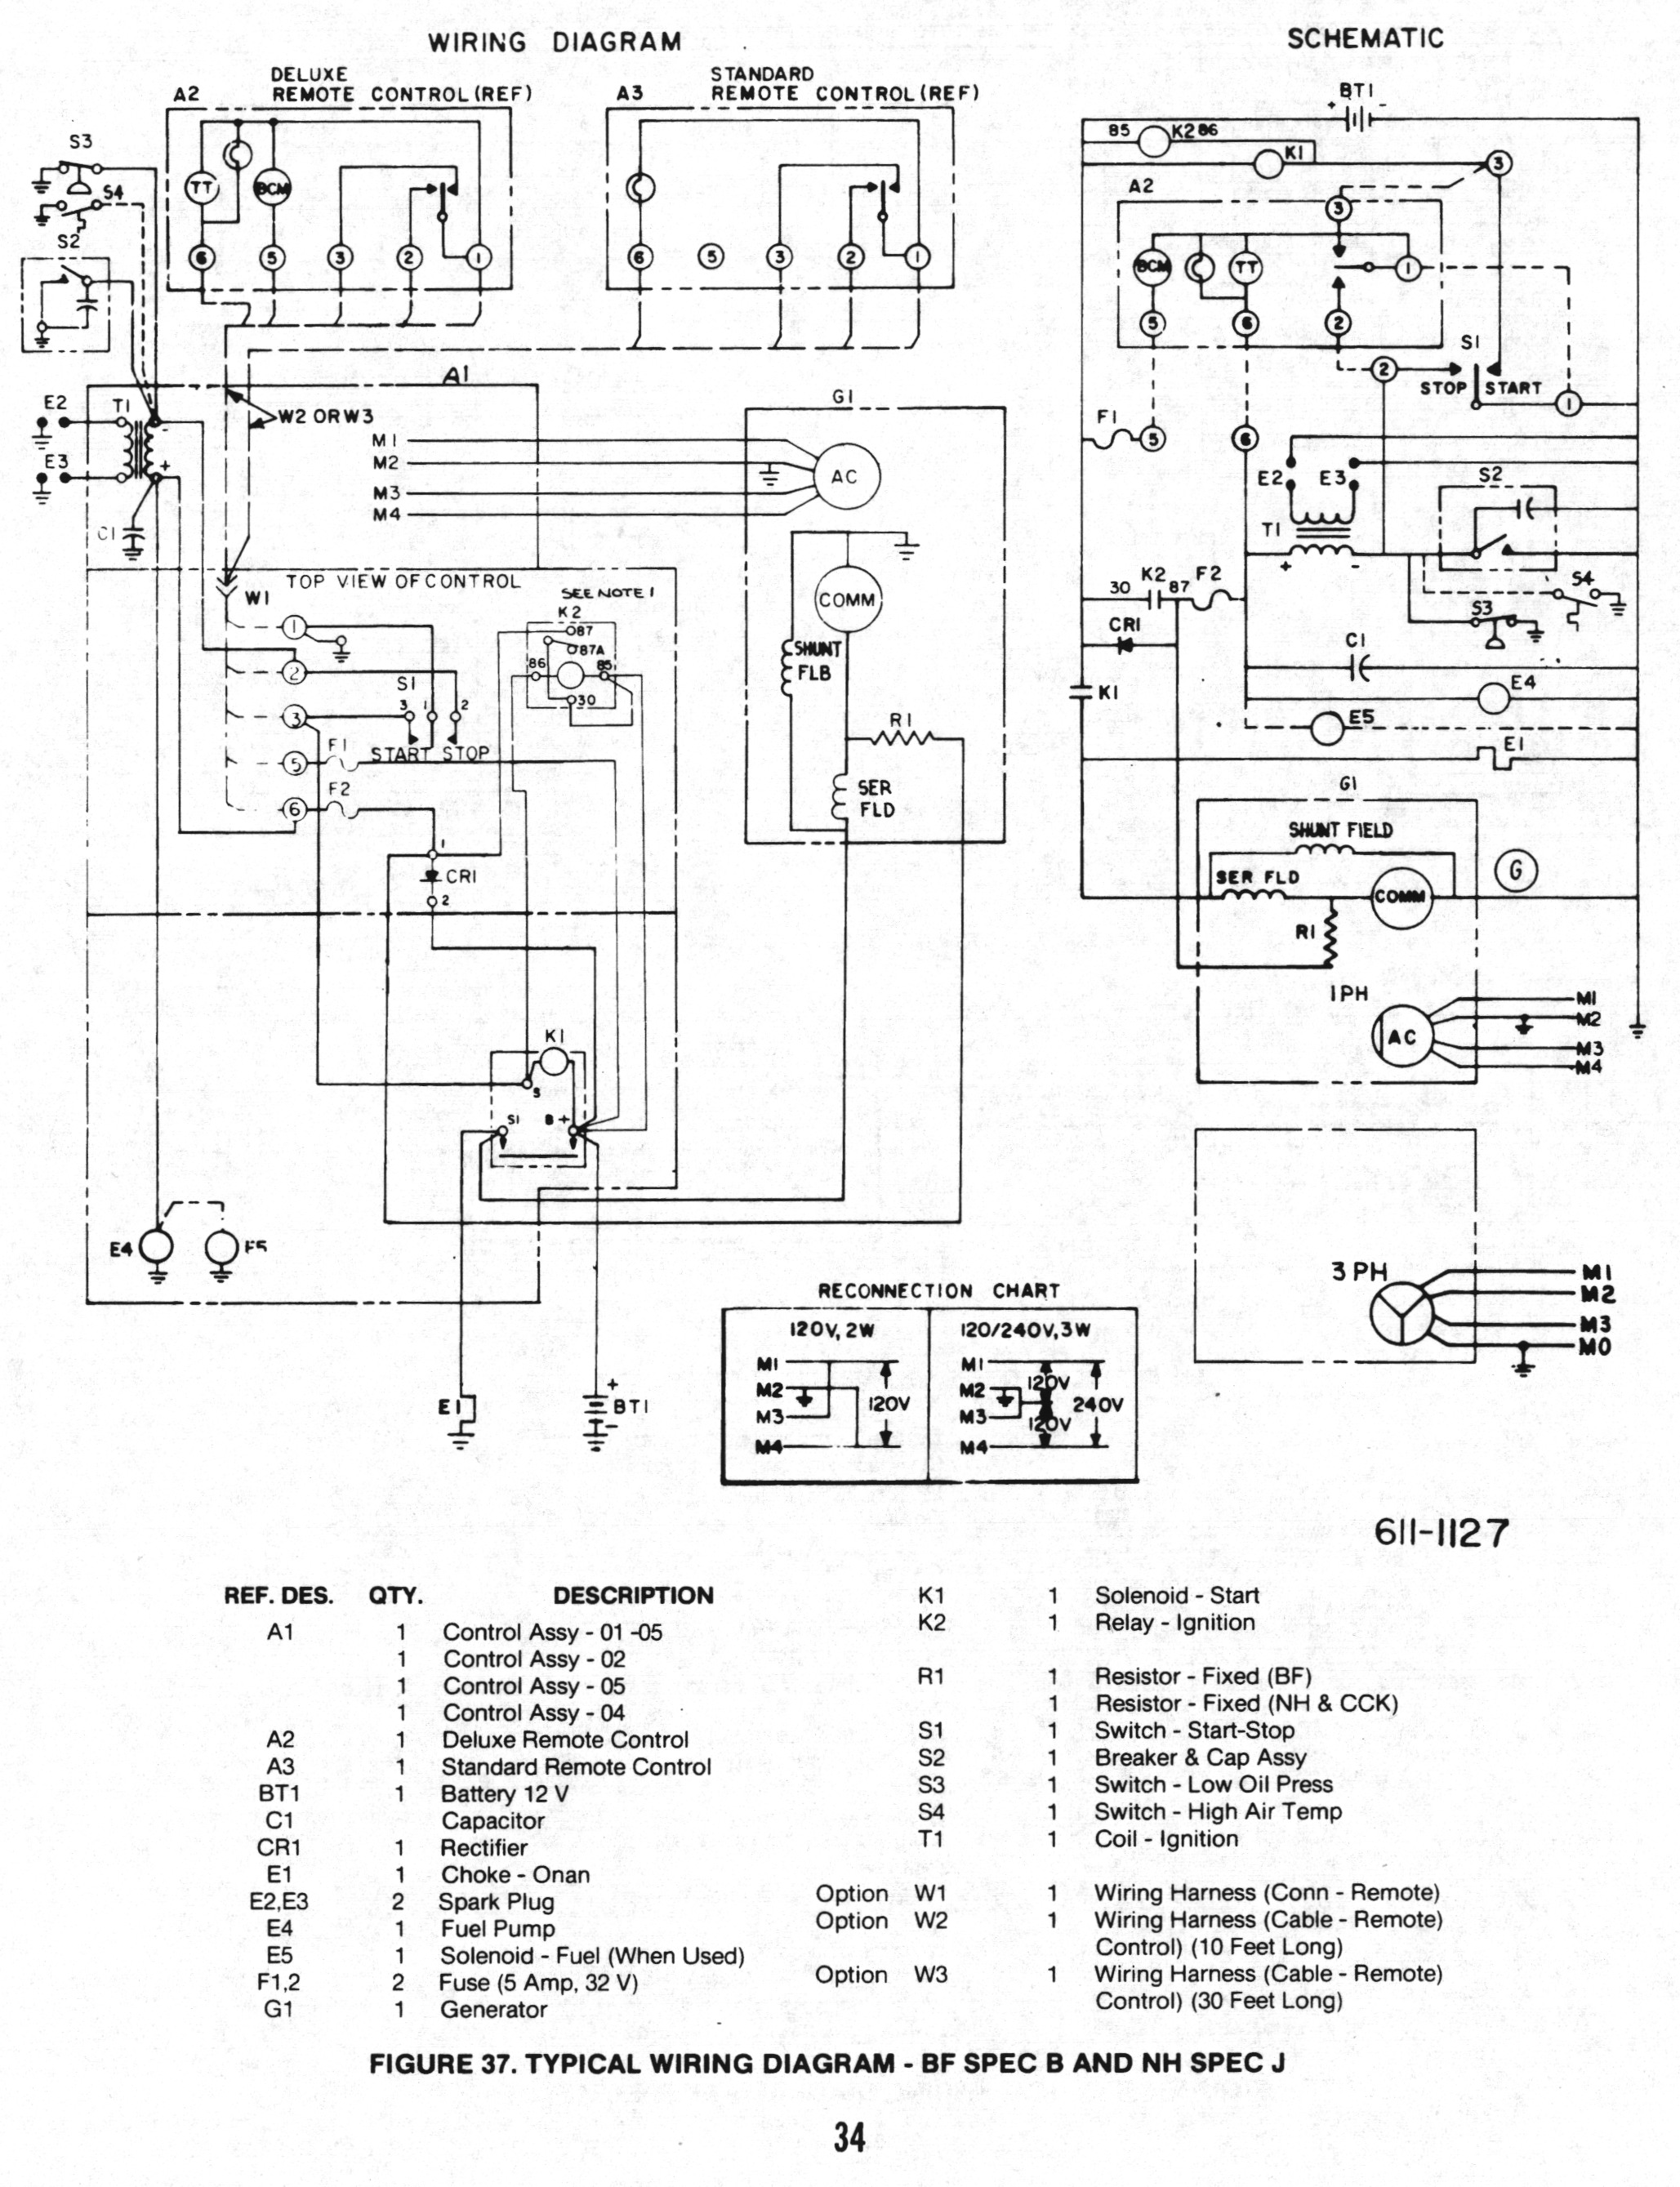 Onan Service Manual for BF/BFA/BGA/NH: 900-0337: Page 34